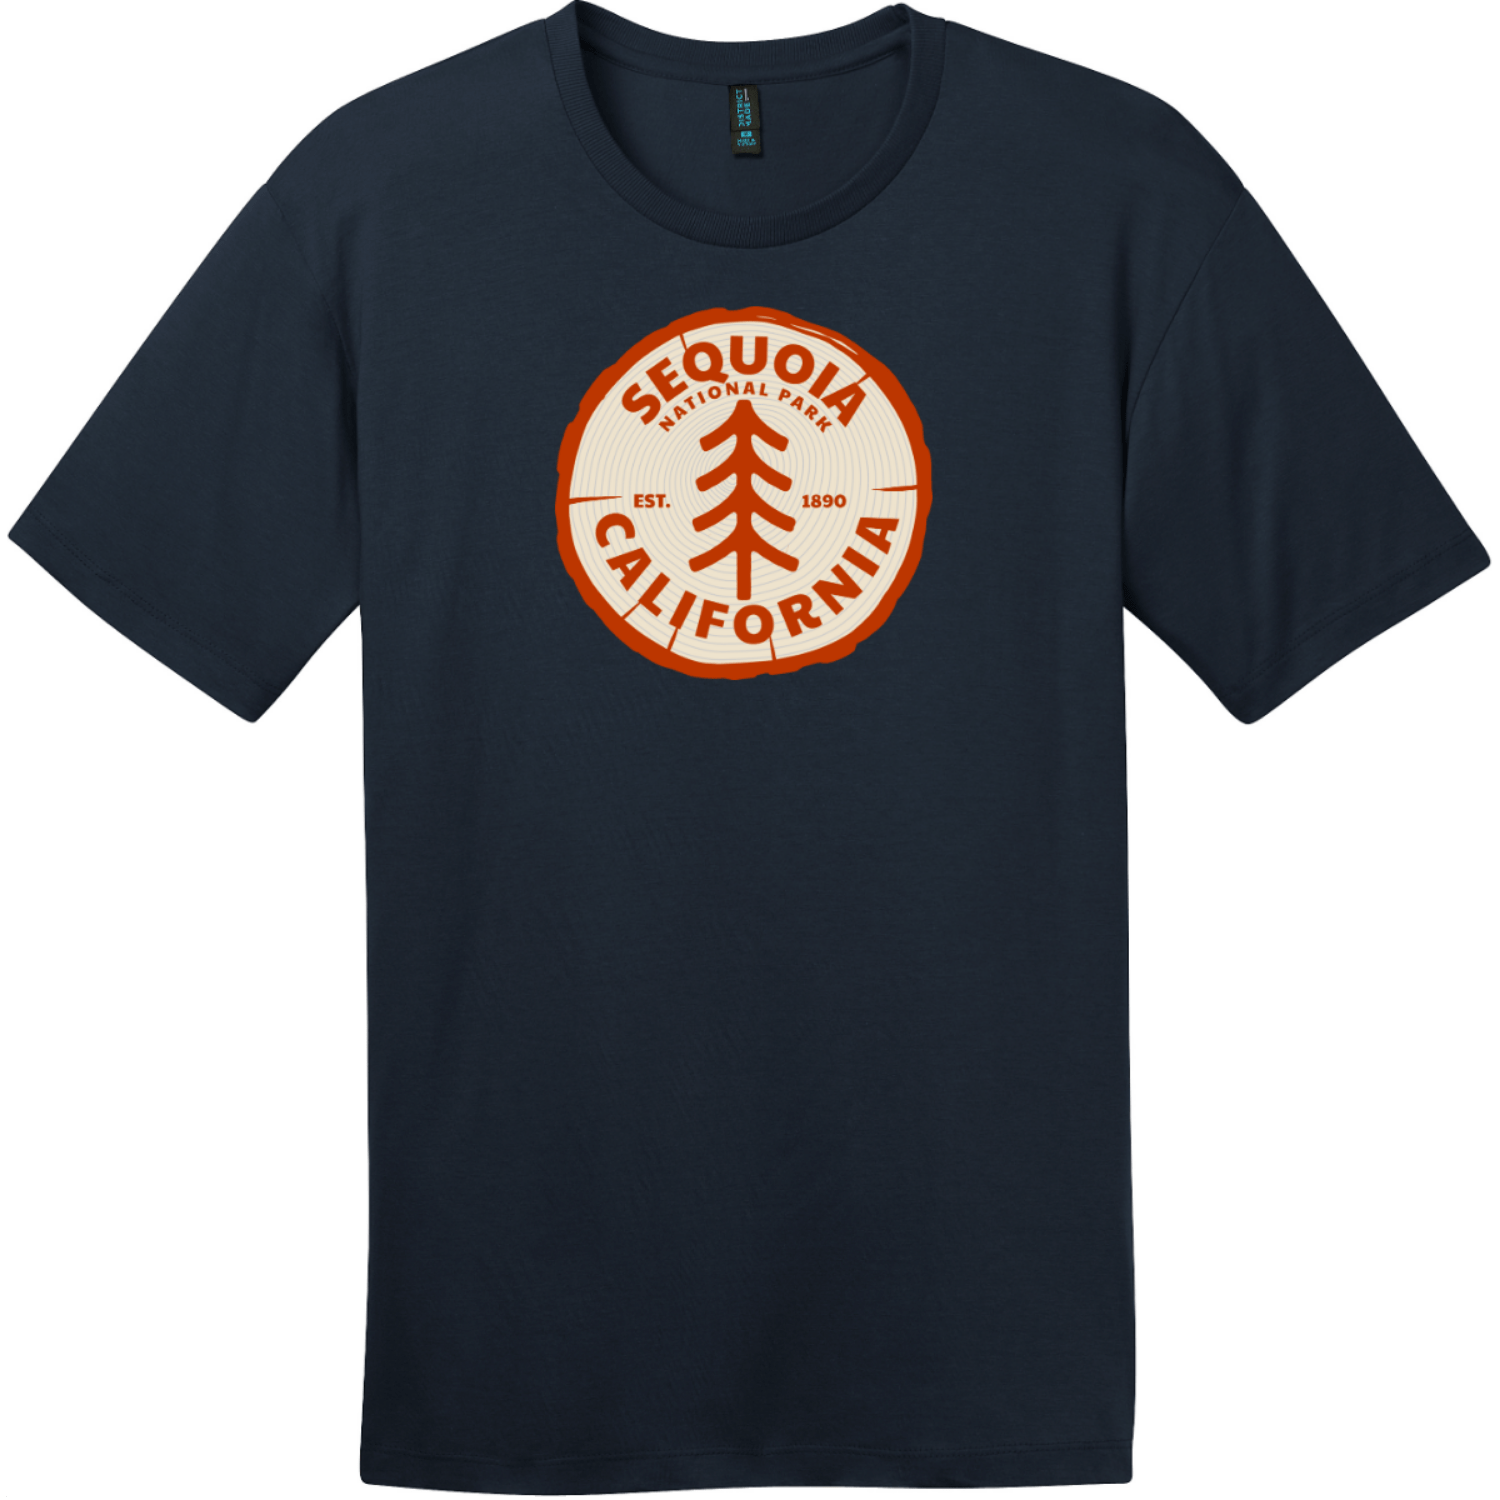 Sequoia National Park California Tree T-Shirt New Navy District Perfect Weight Tee DT104